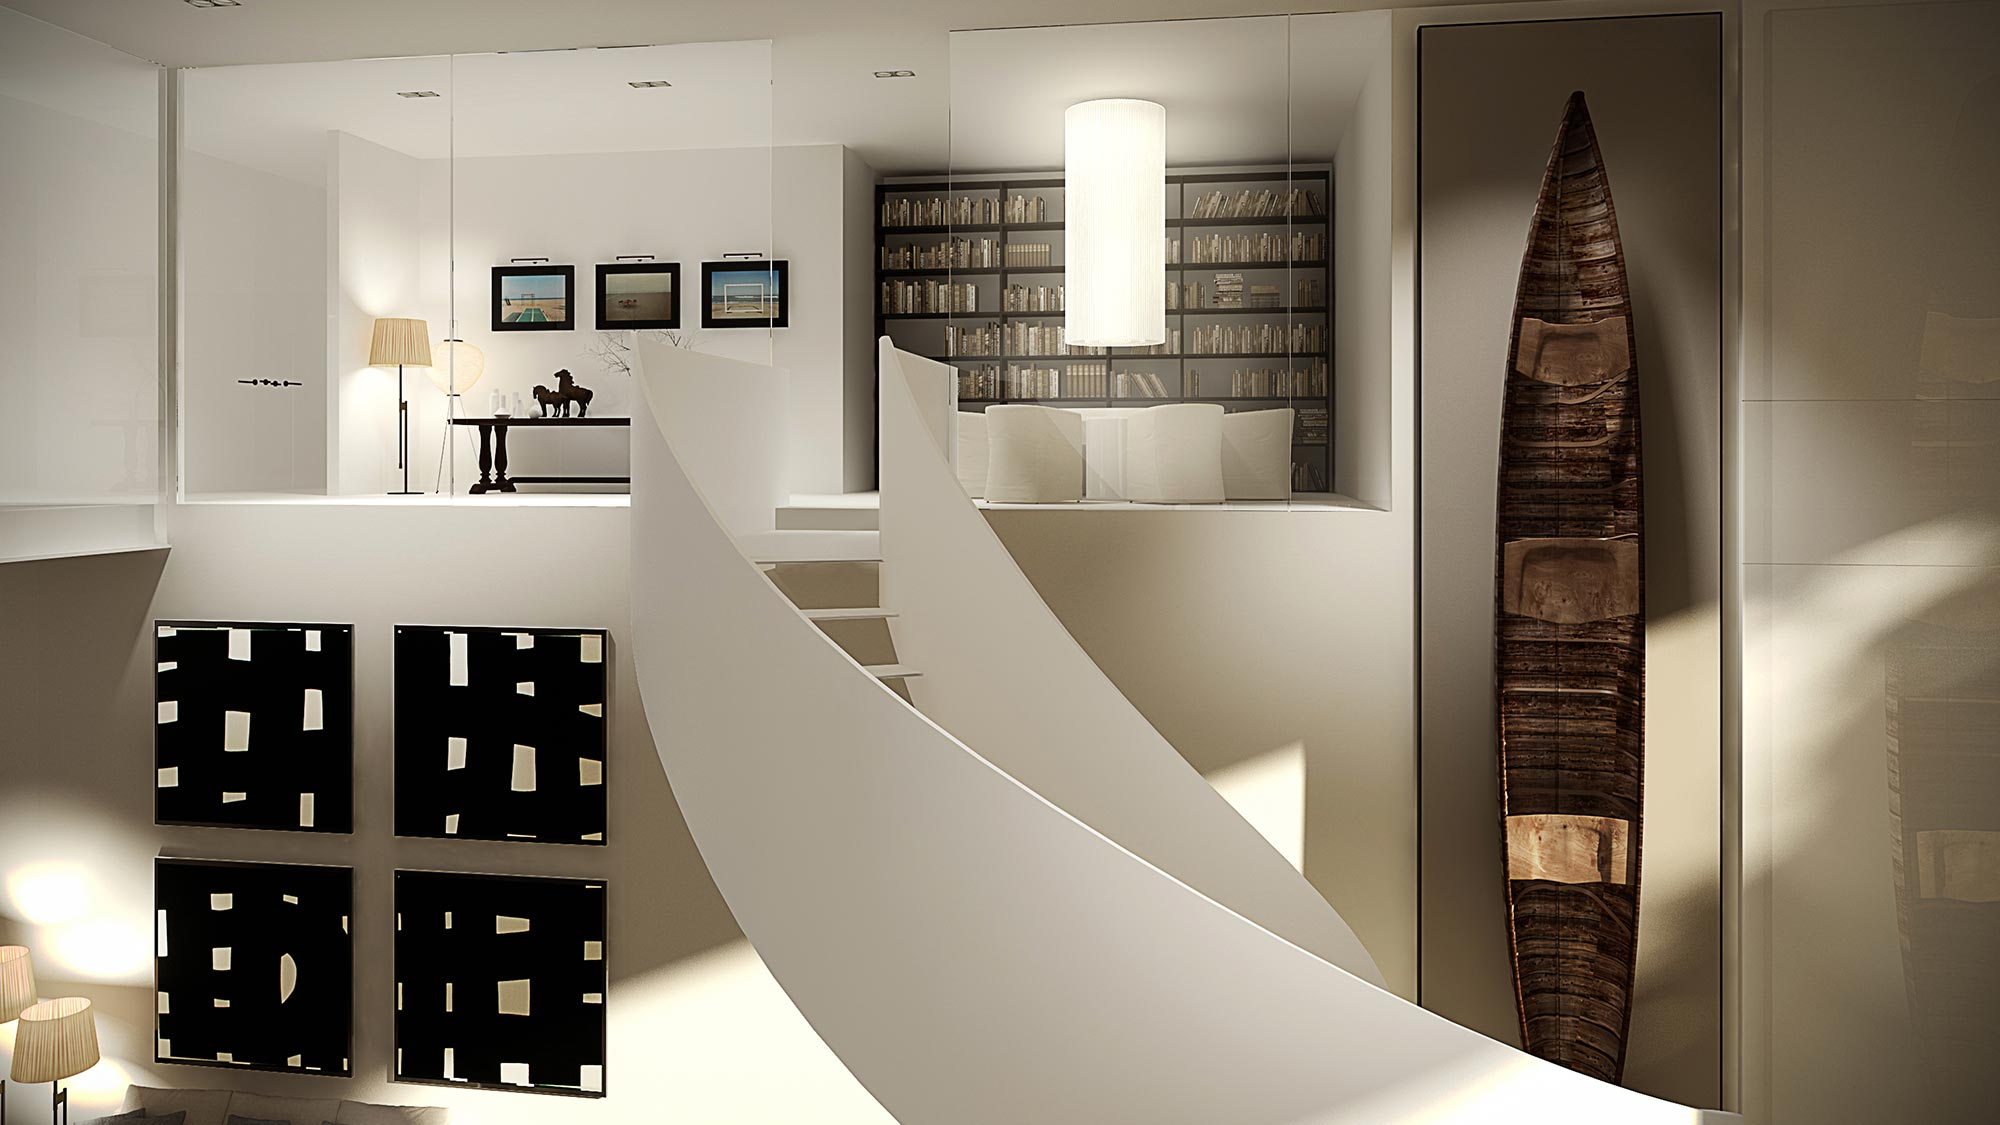 Miami Luxury condos at The Ritz-Carlton Residences, Miami Beach Library